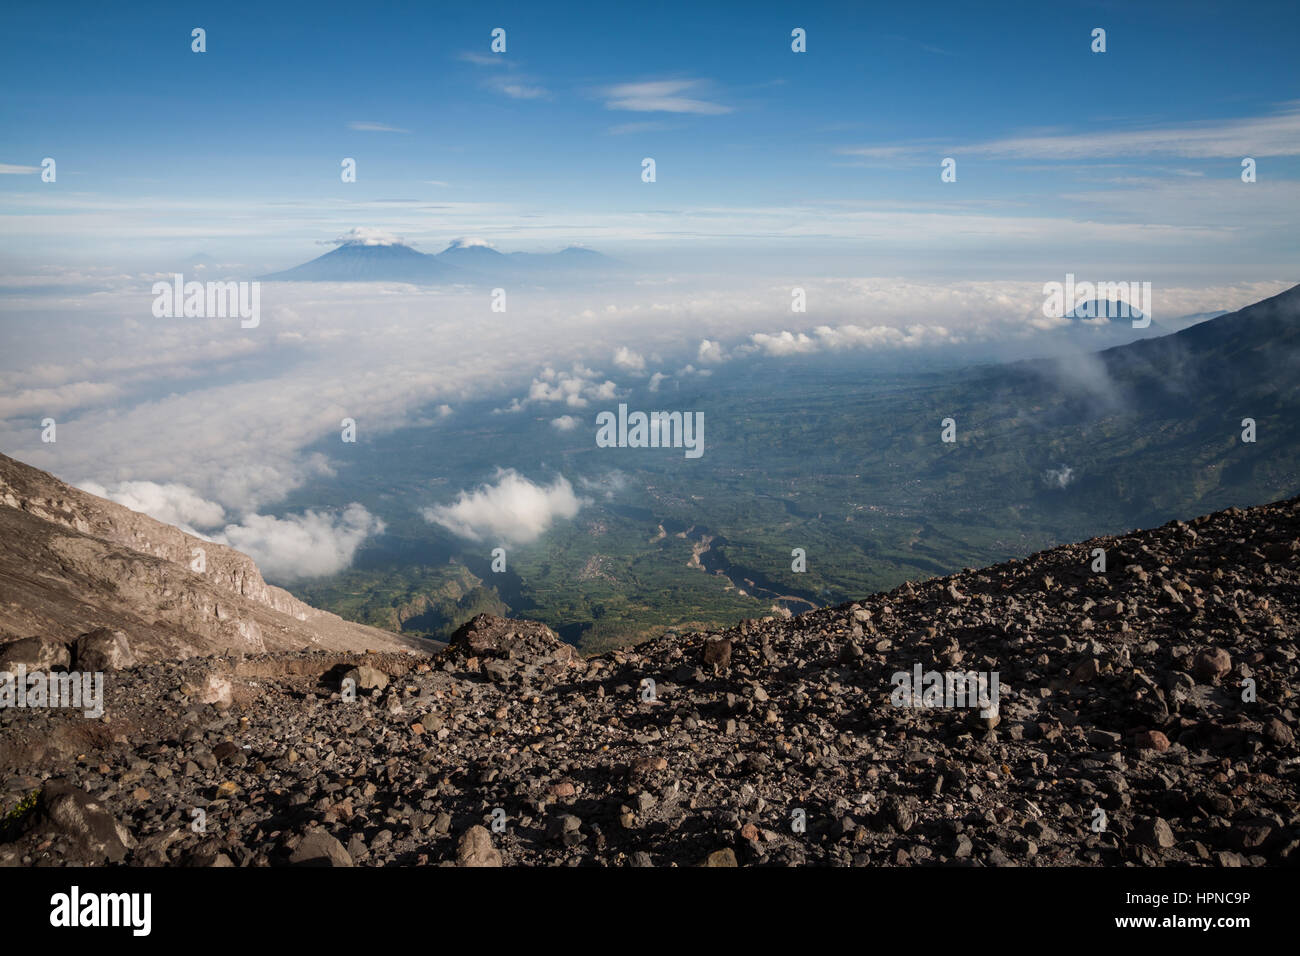 Stunning volcanic landscape viewed from Mount Merapi (Gunung Merapi) a high altitude volcano with a summit at 2,930 - Stock Image